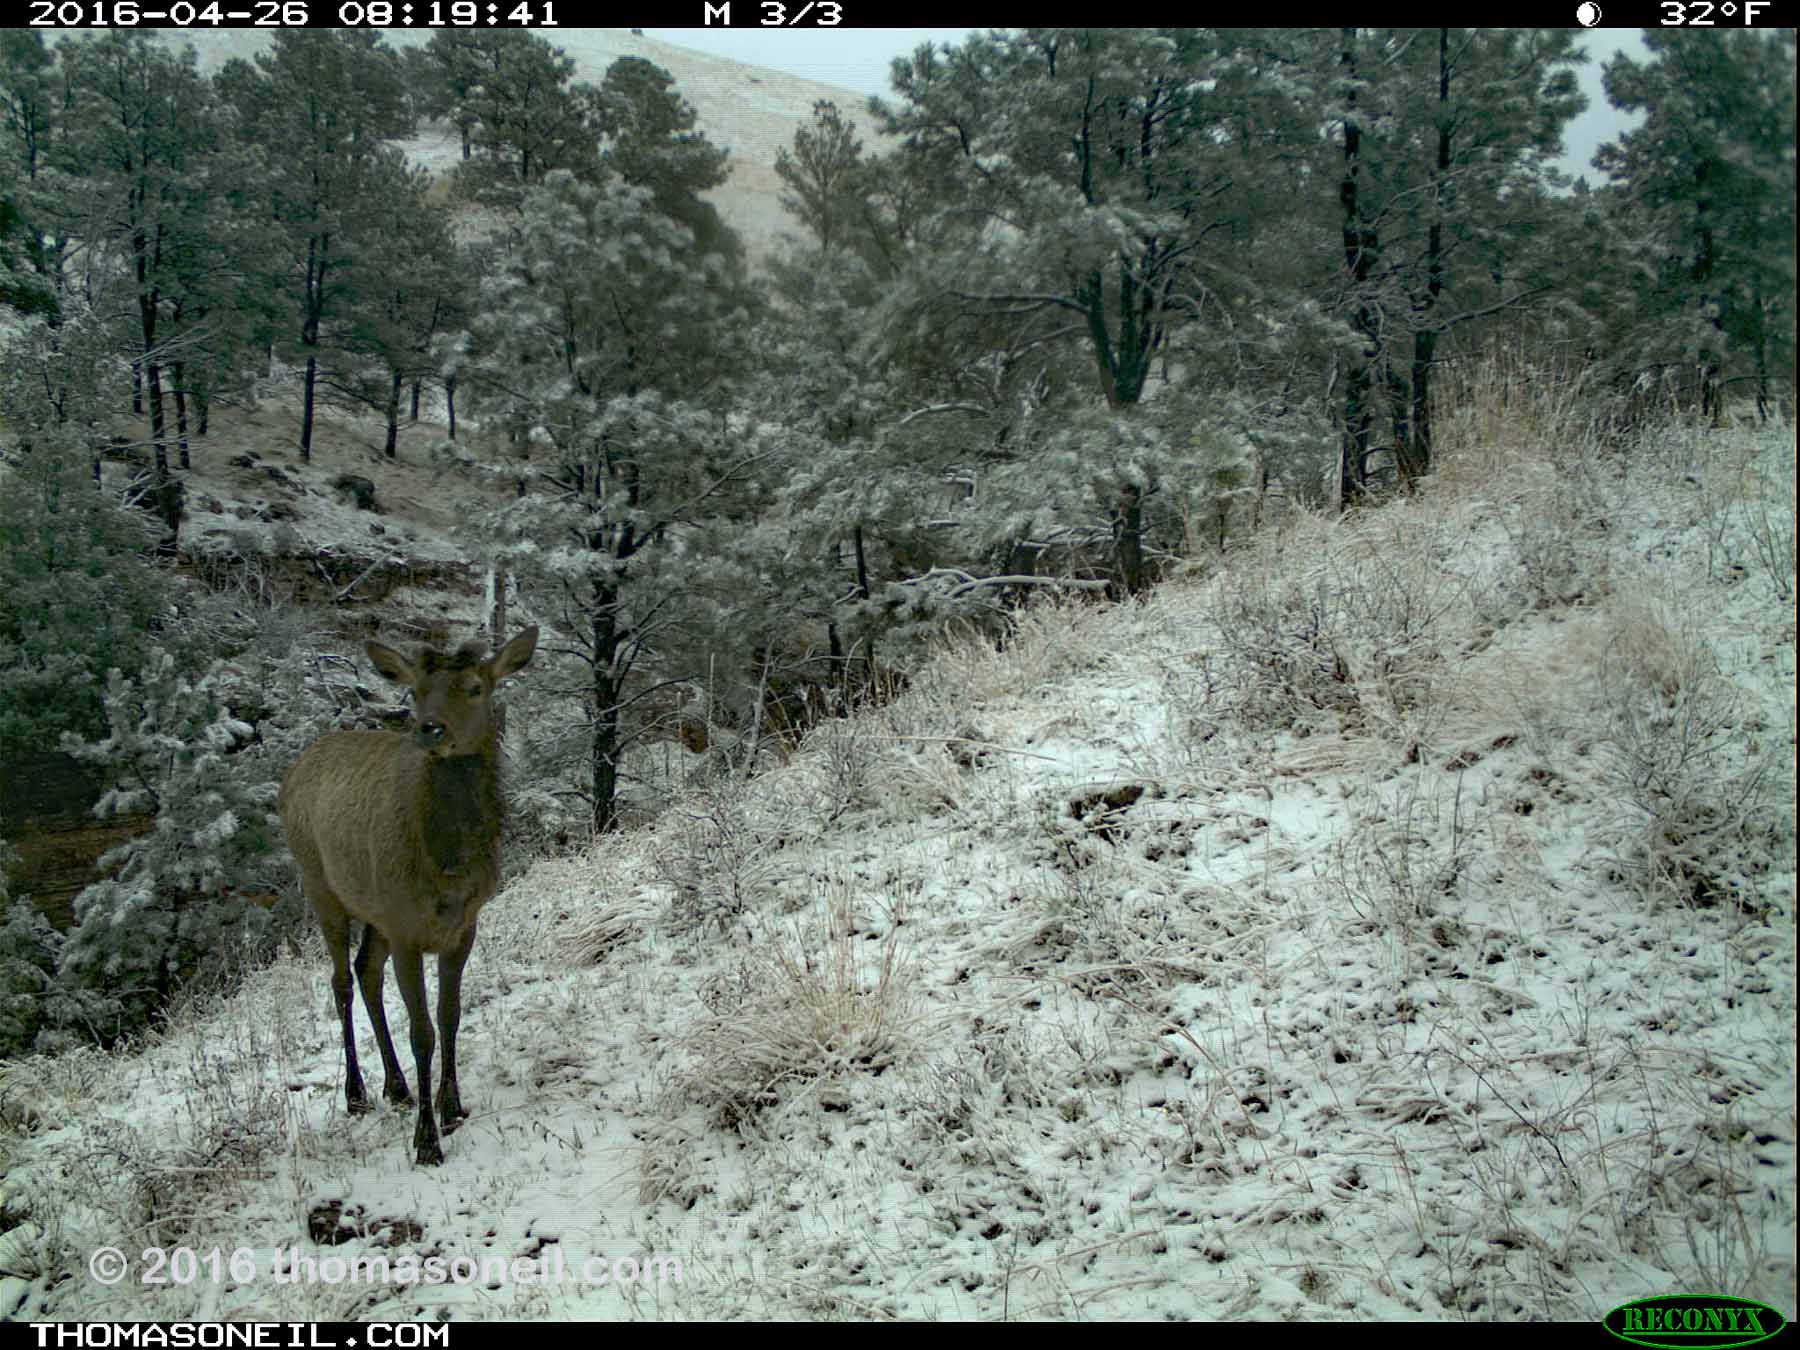 Trailcam image from Wind Cave National Park in April 2016, elk in snow.